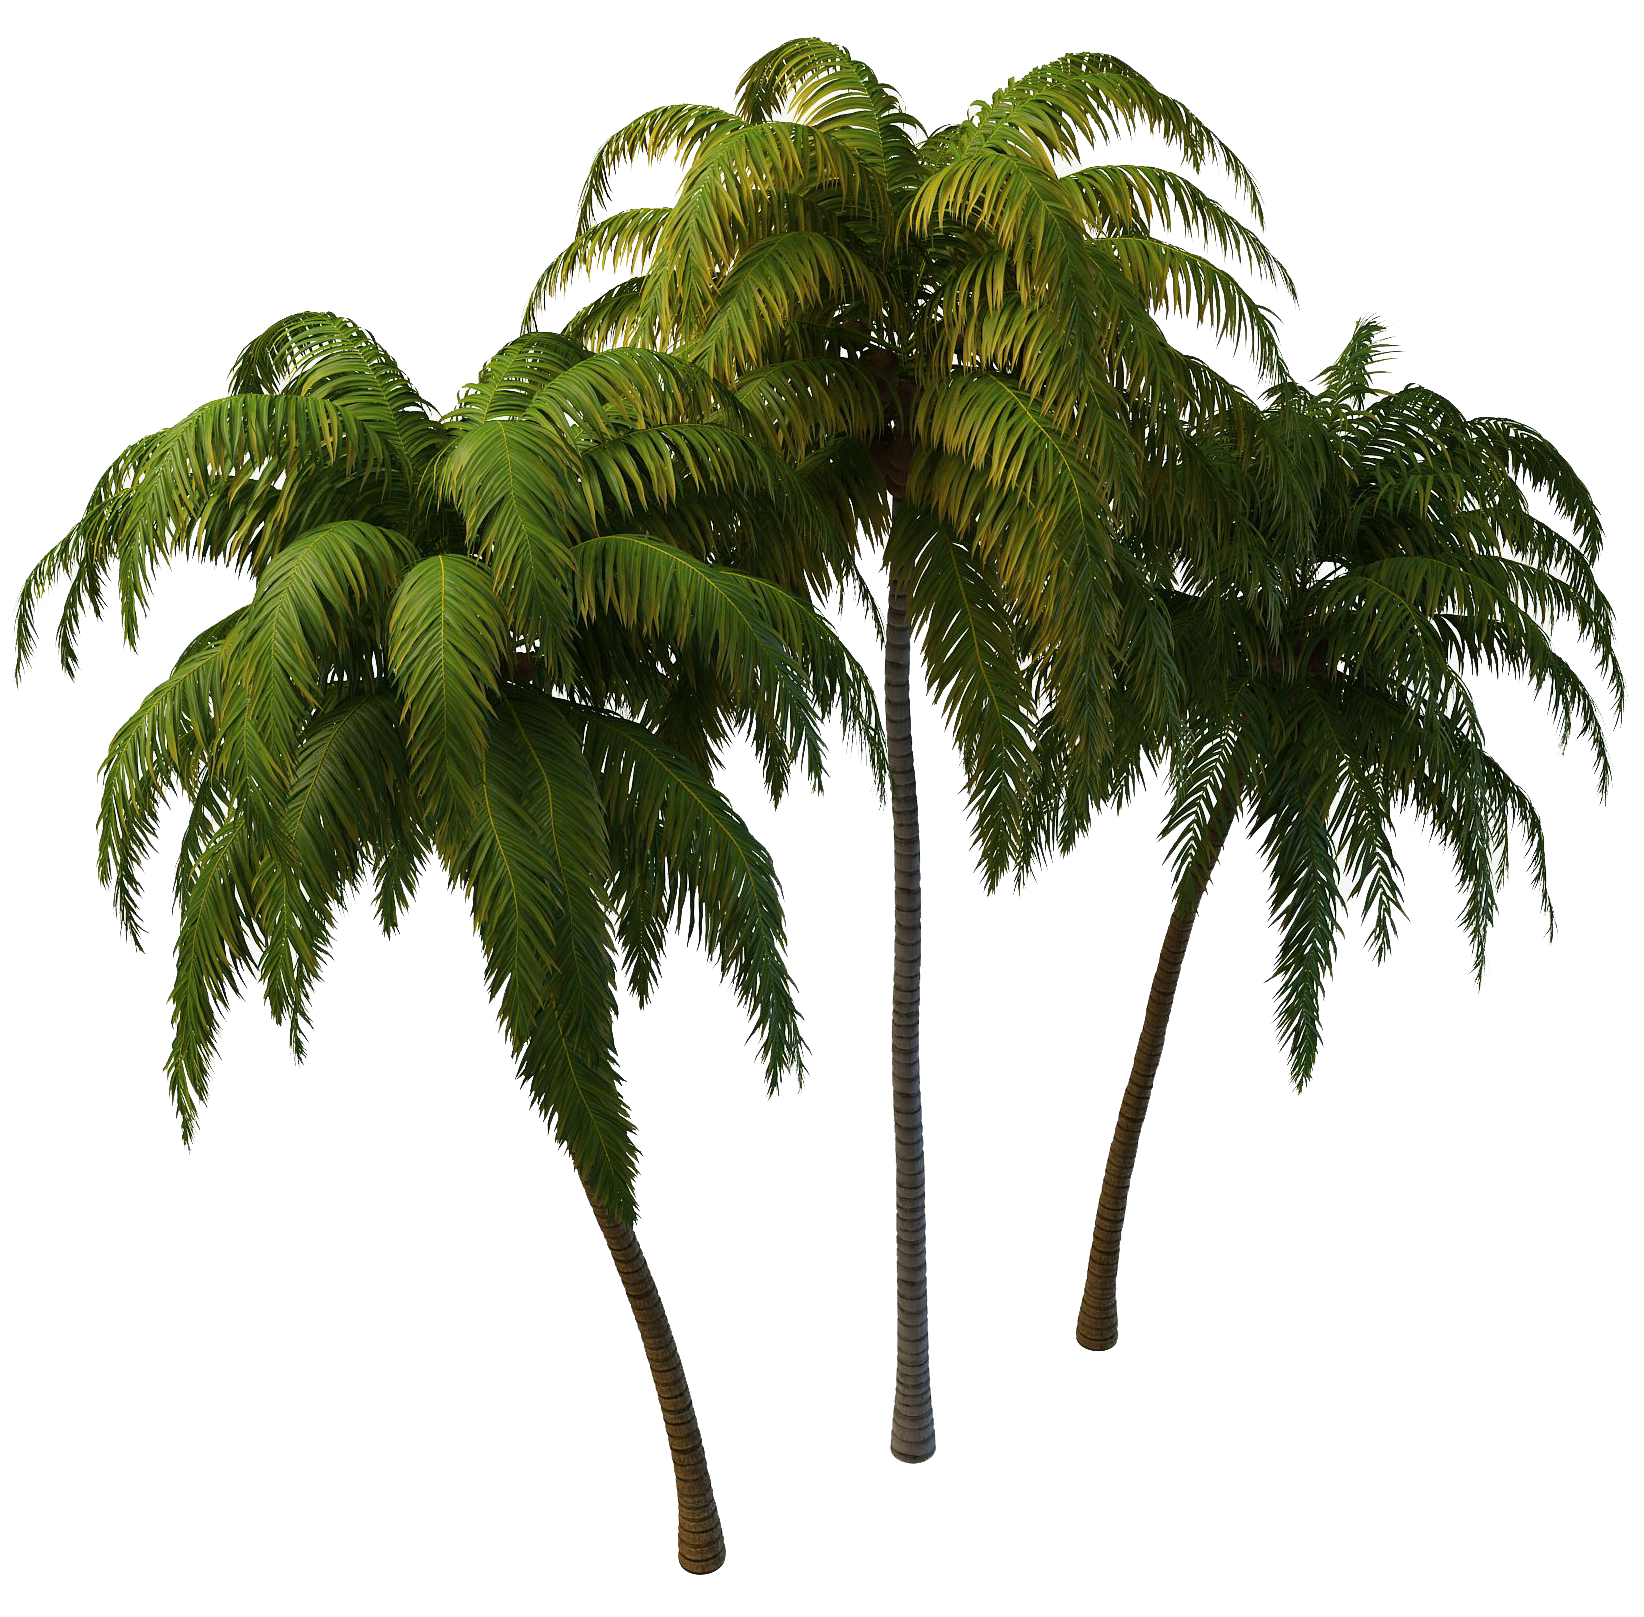 Tree png free download. Coconut images transparent pngmart